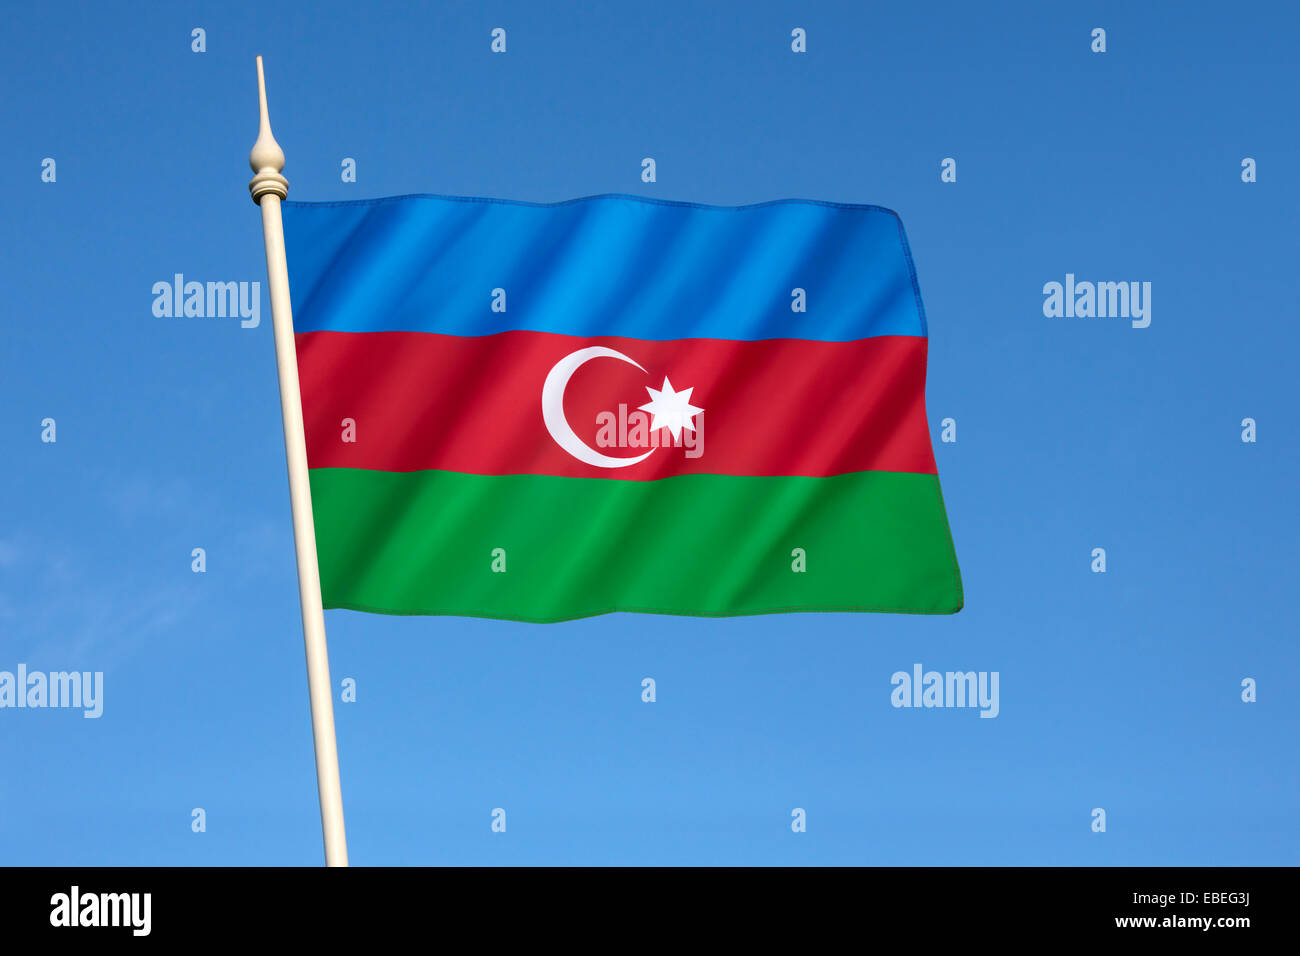 Flag of Azerbaijan - Stock Image